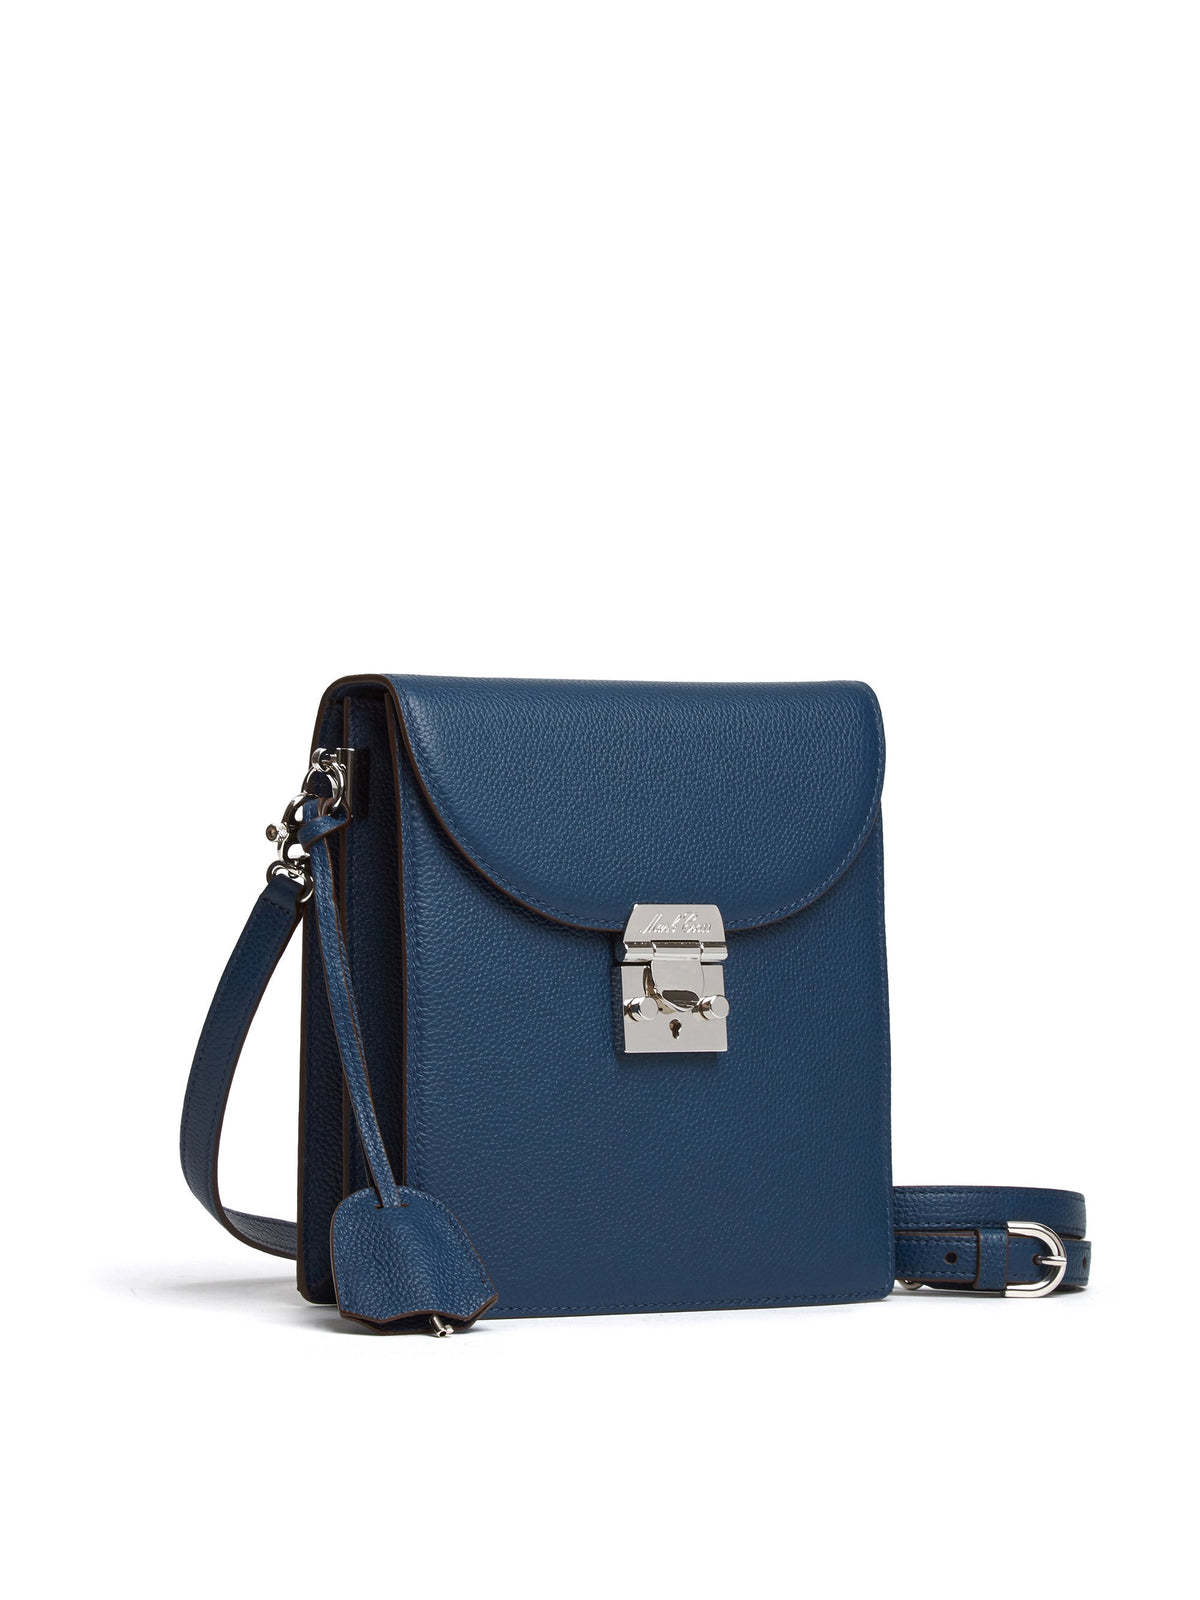 Mark Cross Patrick Leather Crossbody Bag Tumbled Grain Navy Side